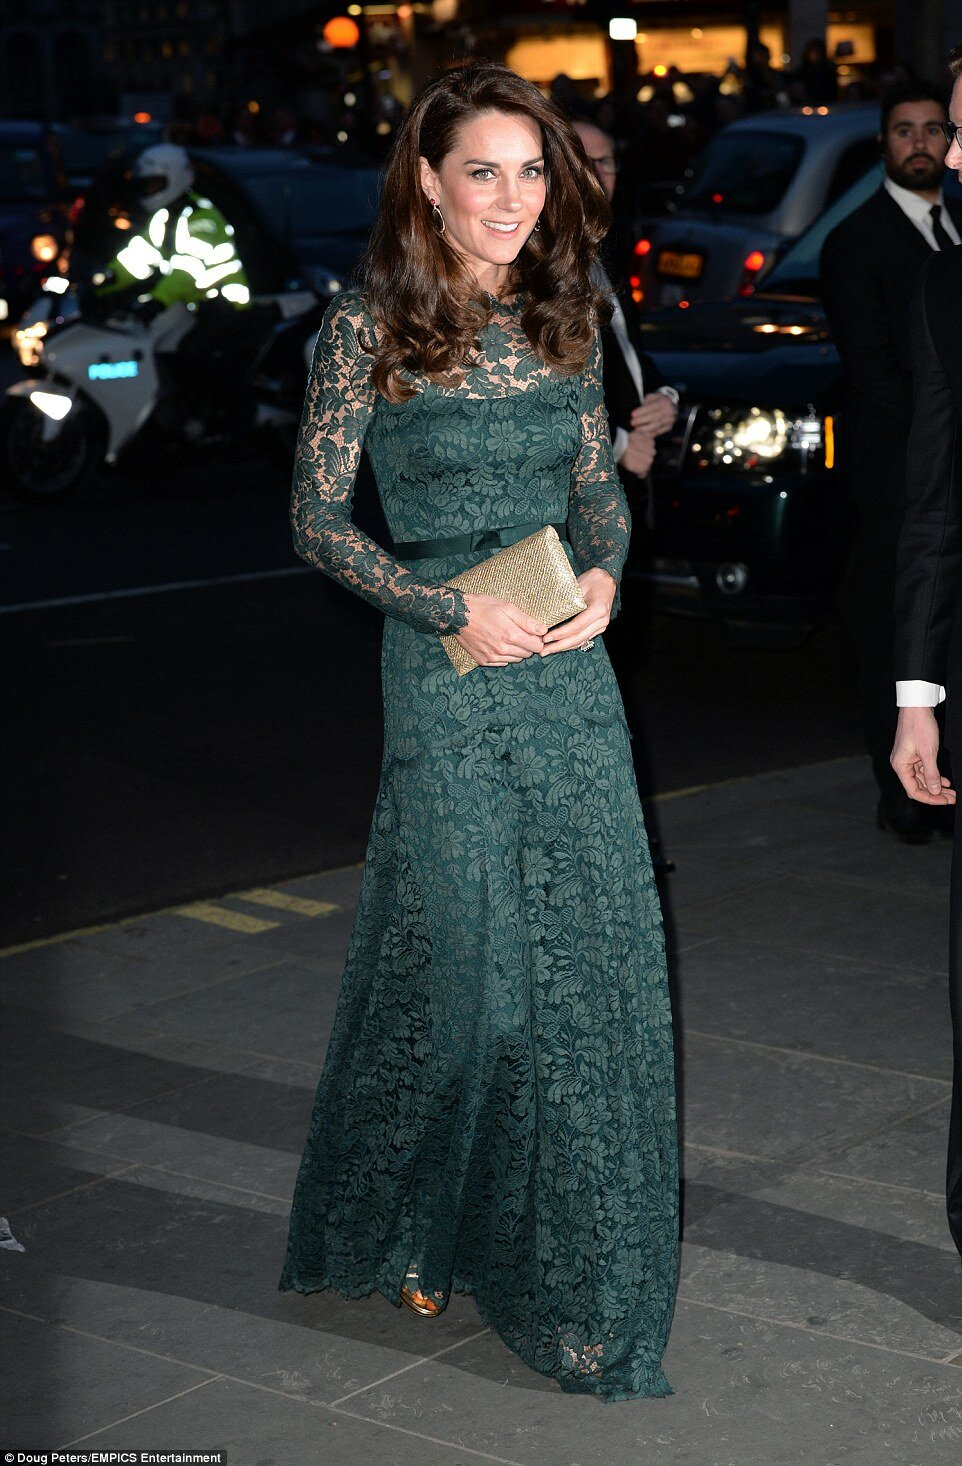 Kate Middleton Looks Gorgeous In A Clingy Lace Dress Fpn